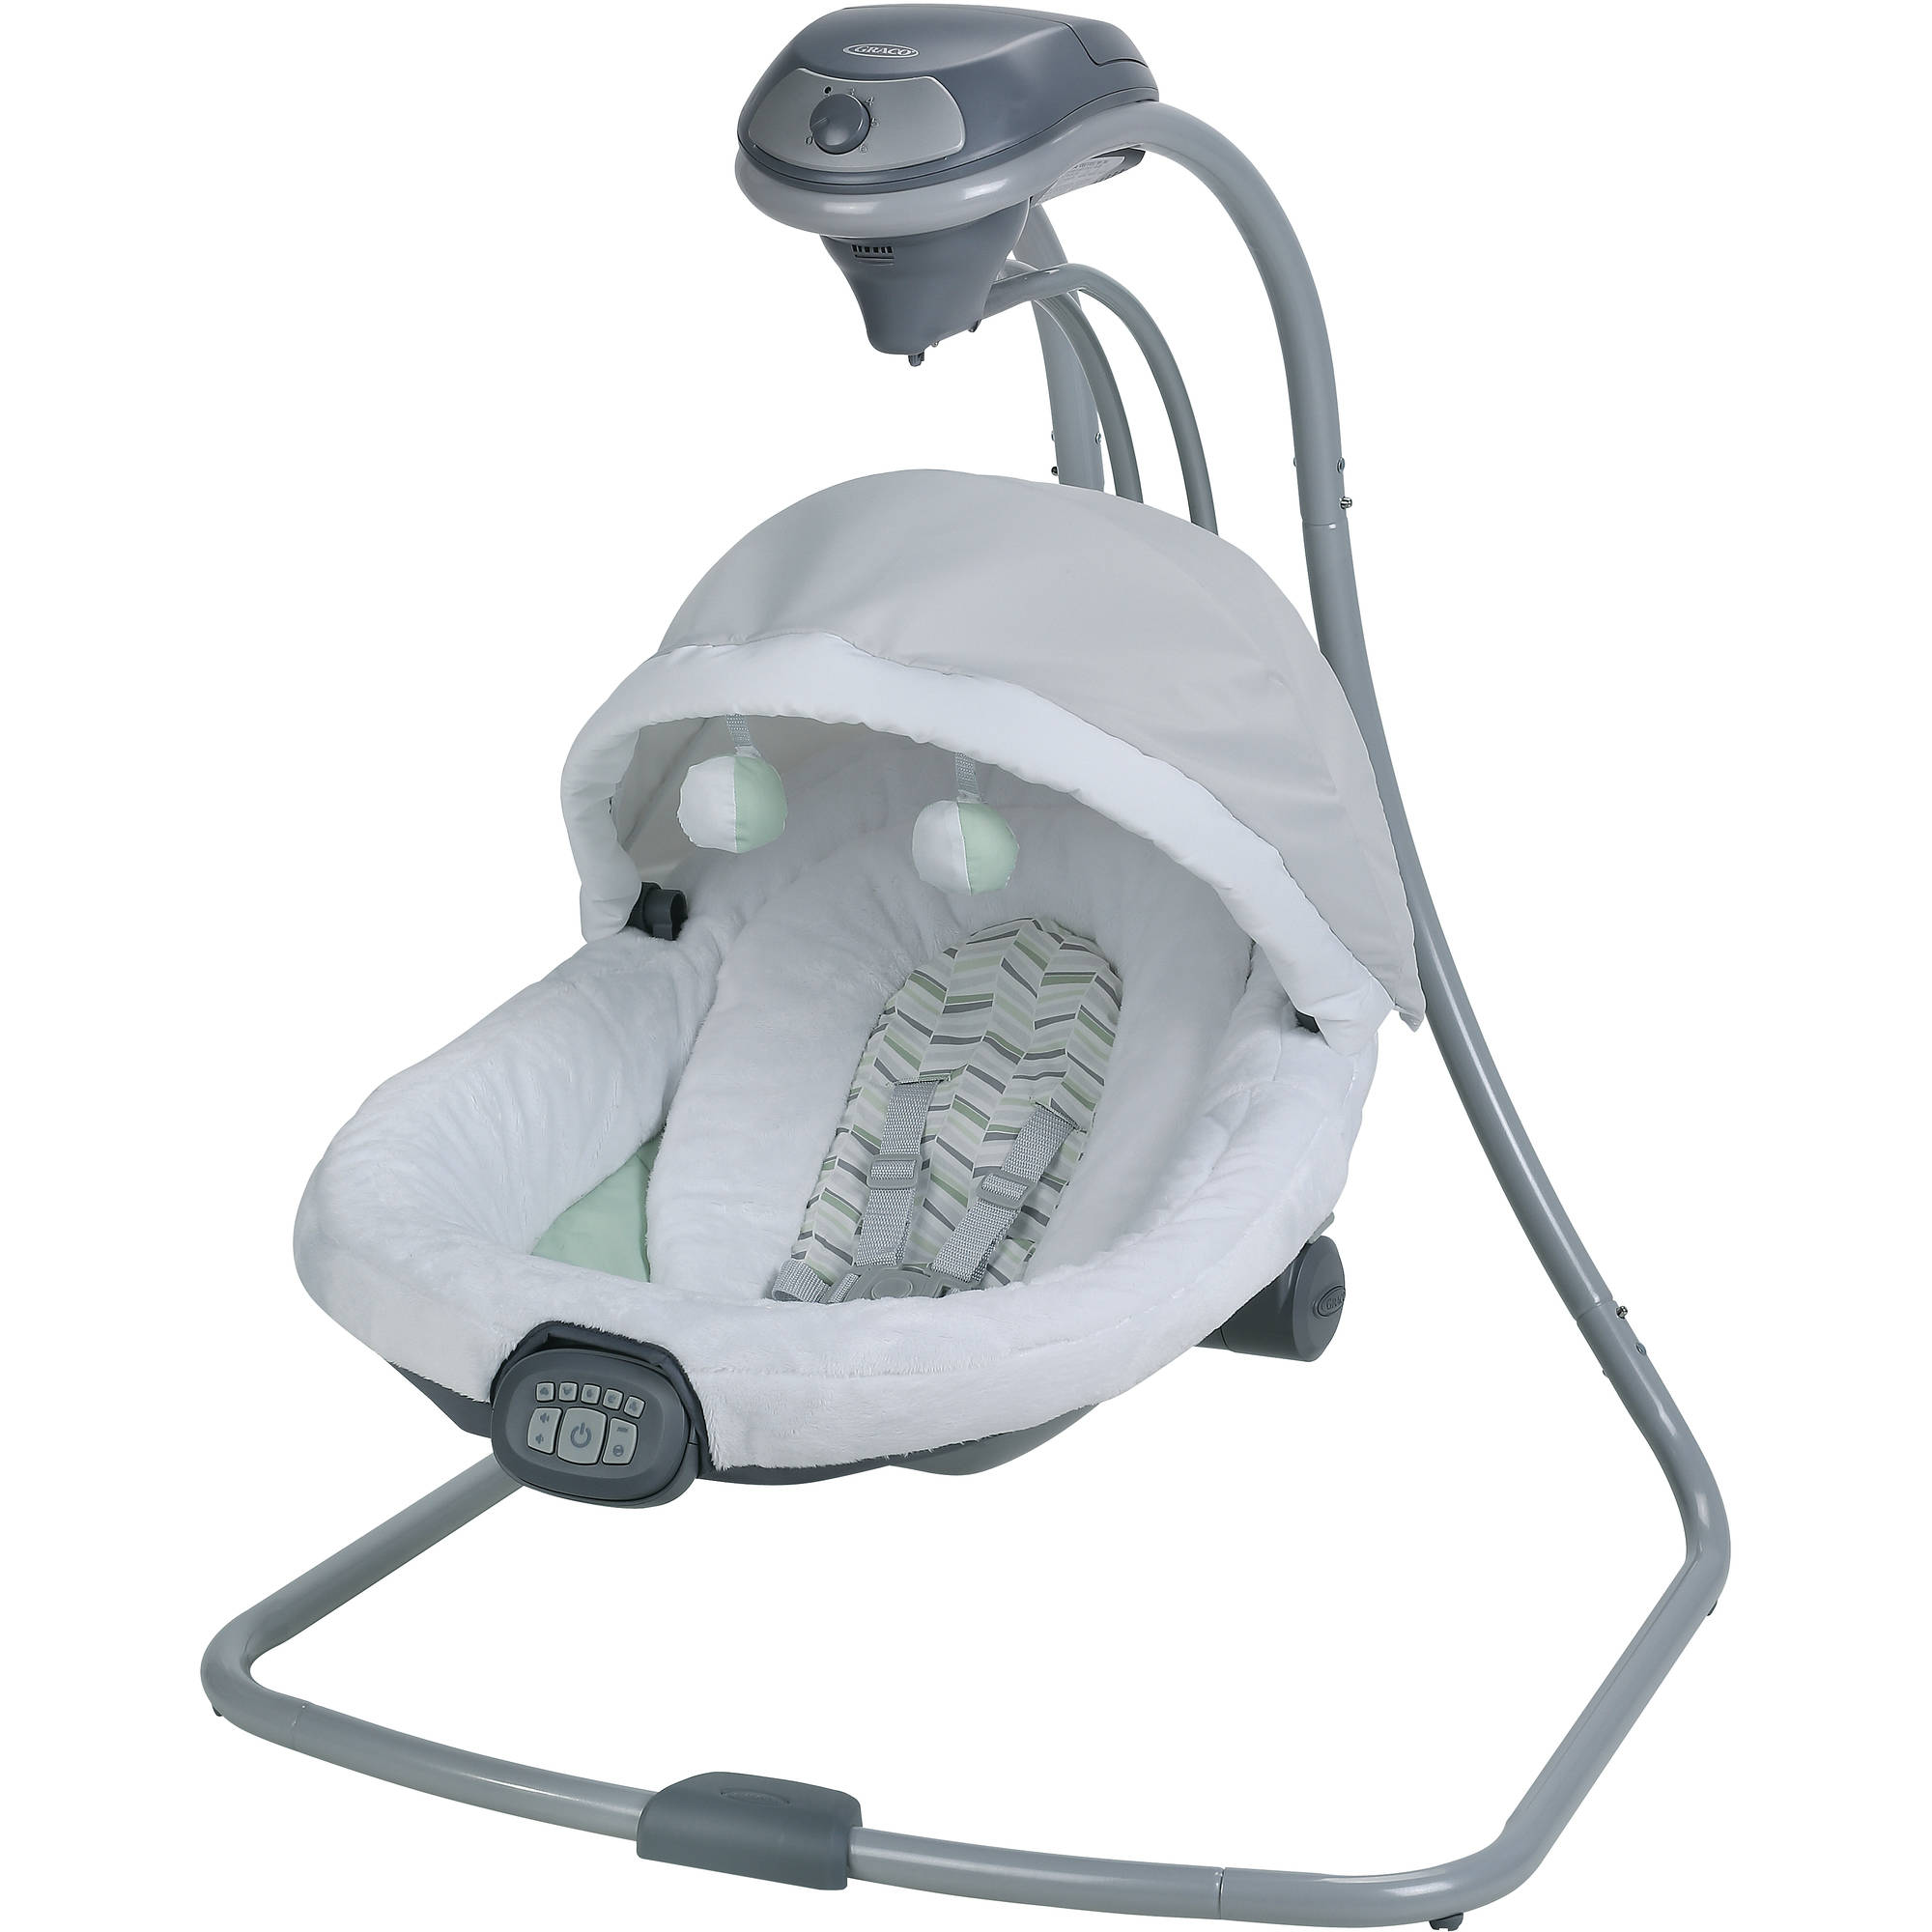 Graco Oasis with Soothe Surround Technology Baby Swing, Landry